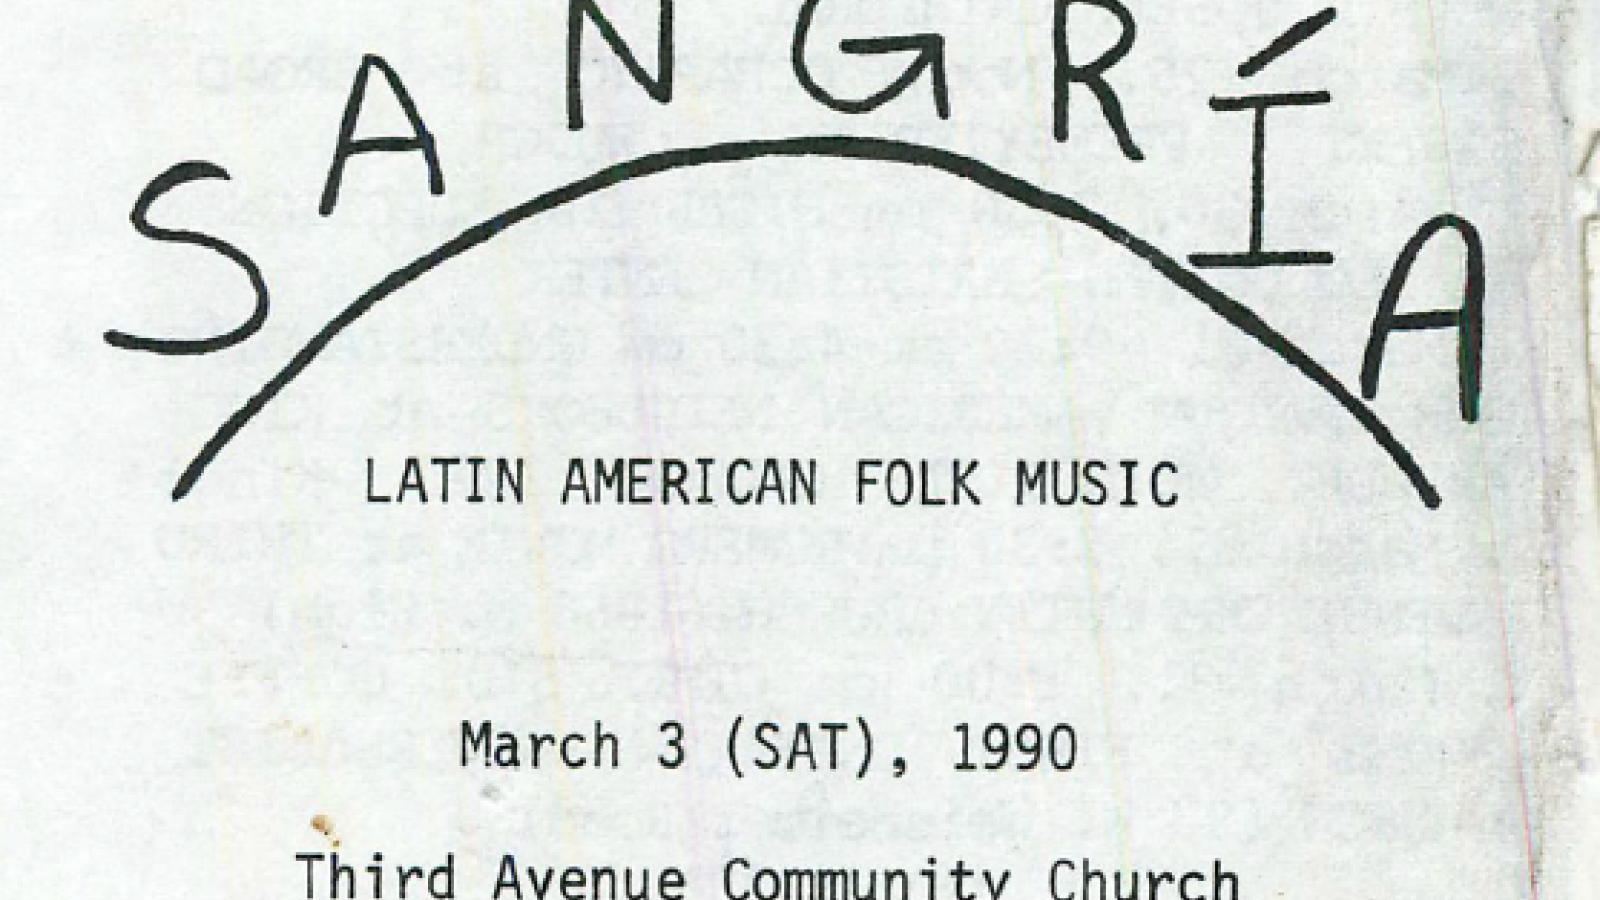 Flyer for Sangria, Latin American Folk Band March 3, 1990